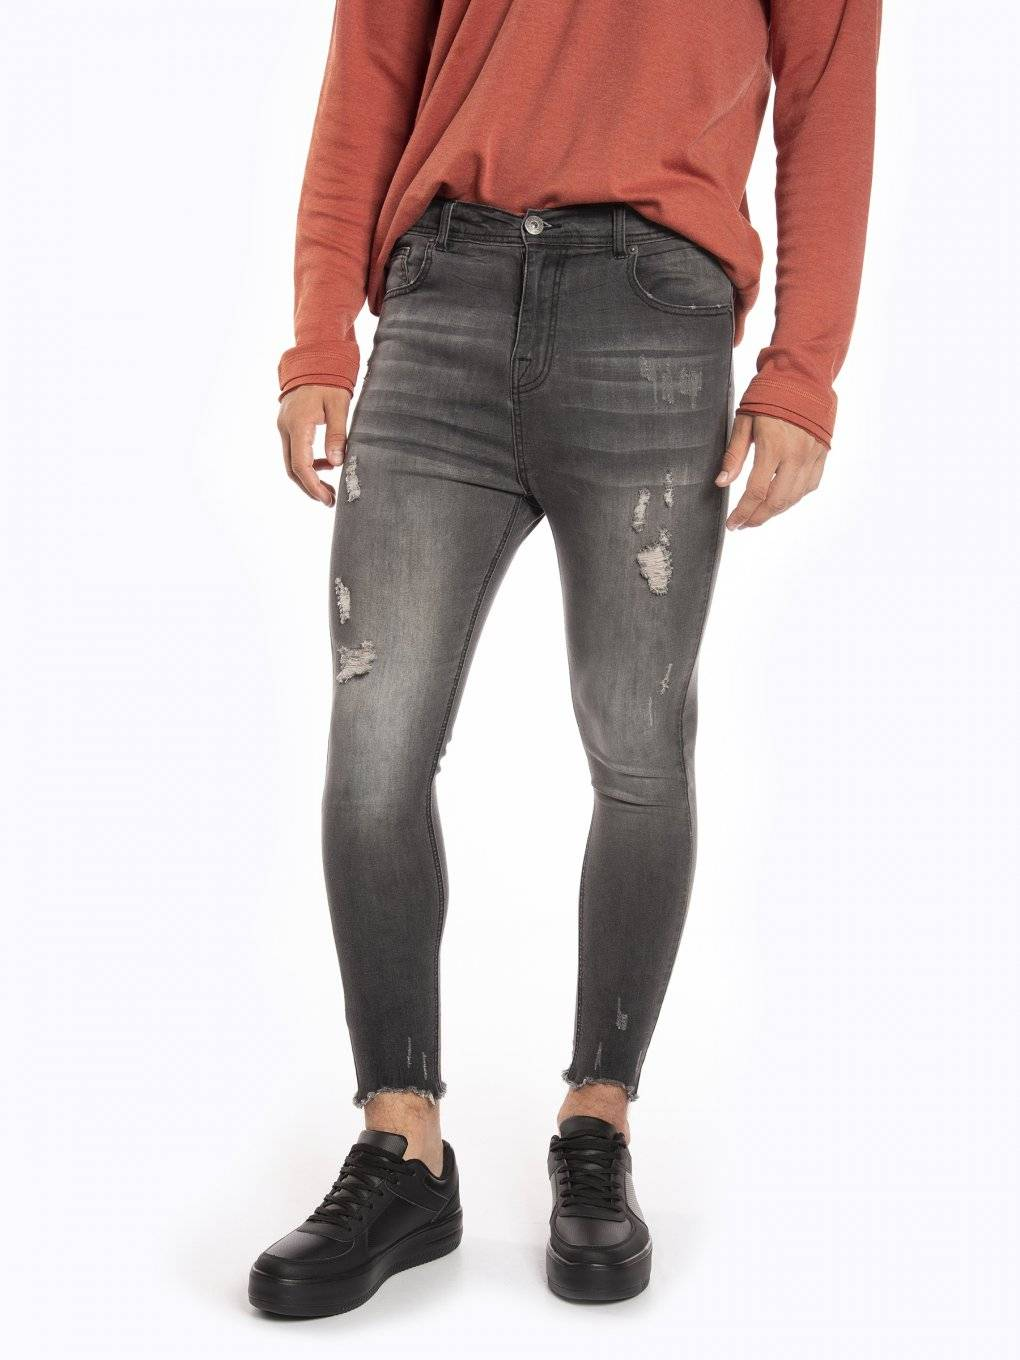 Damaged carrot fit jeans with frayed hem